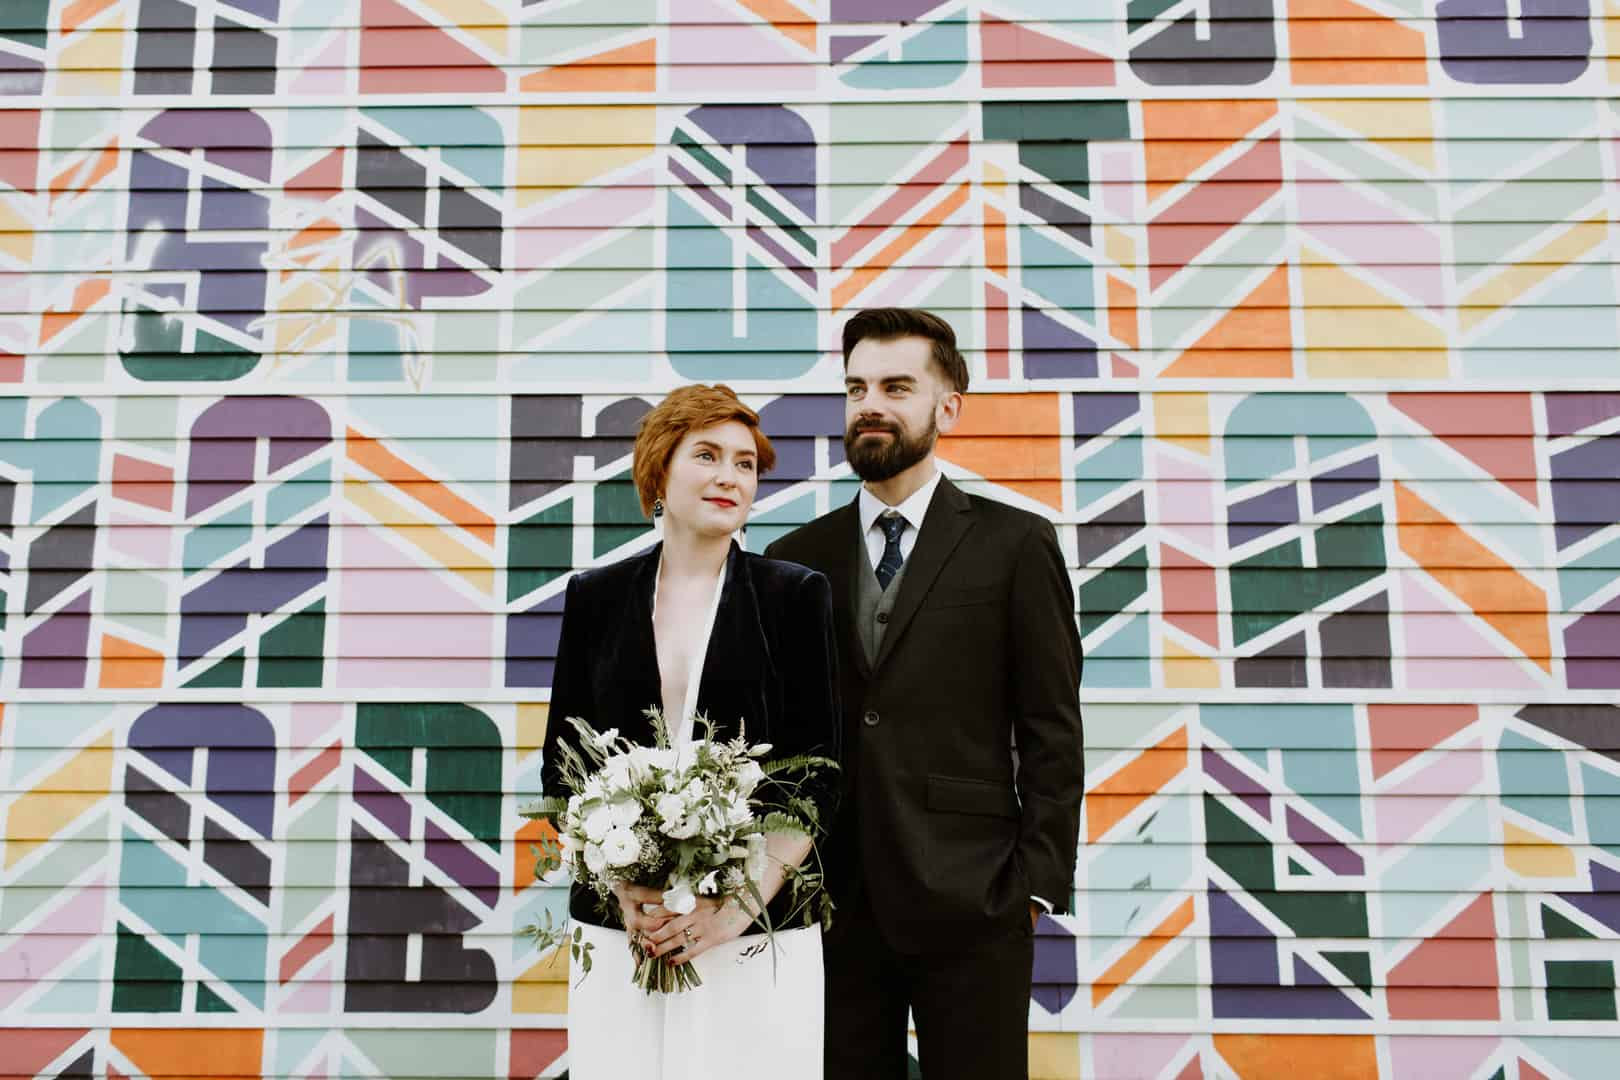 6d6e812f43 THIS BEAUTIFUL WEDDING SHOWS THE IMPORTANCE OF KEEPING THINGS SIMPLE    BEING AUTHENTIC